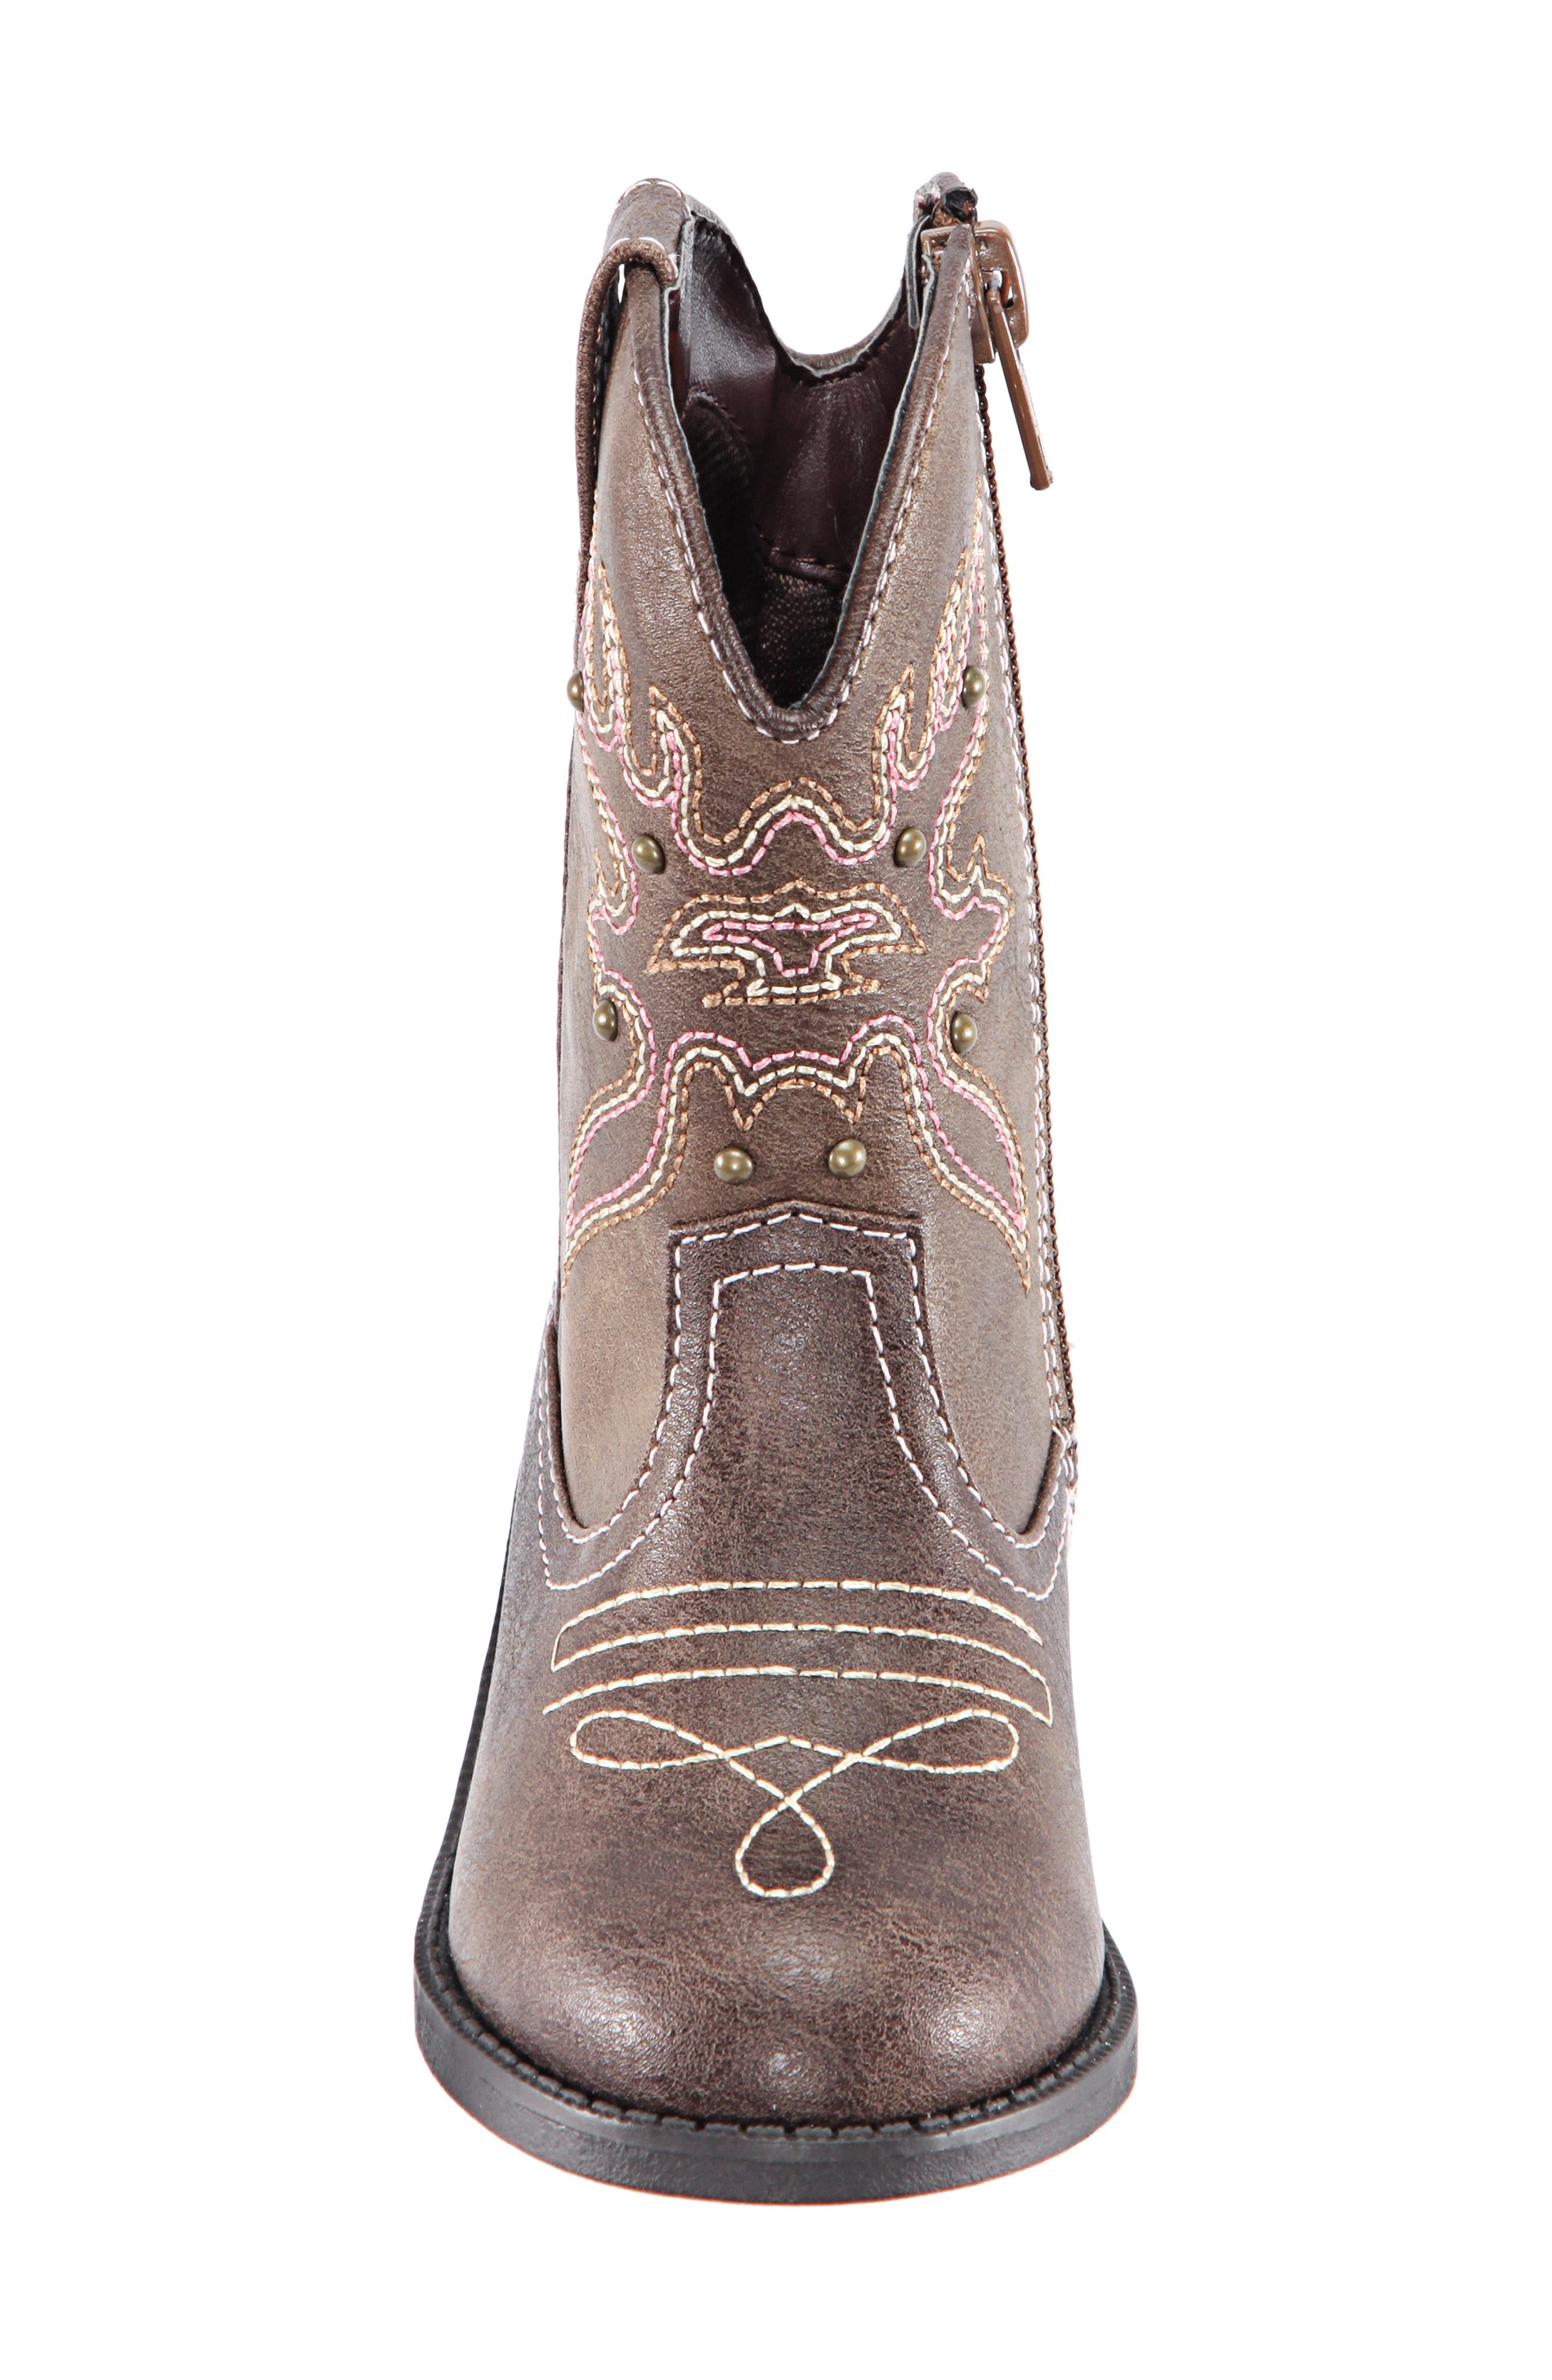 Mirabele Cowboy Boot,                             Alternate thumbnail 4, color,                             BROWN